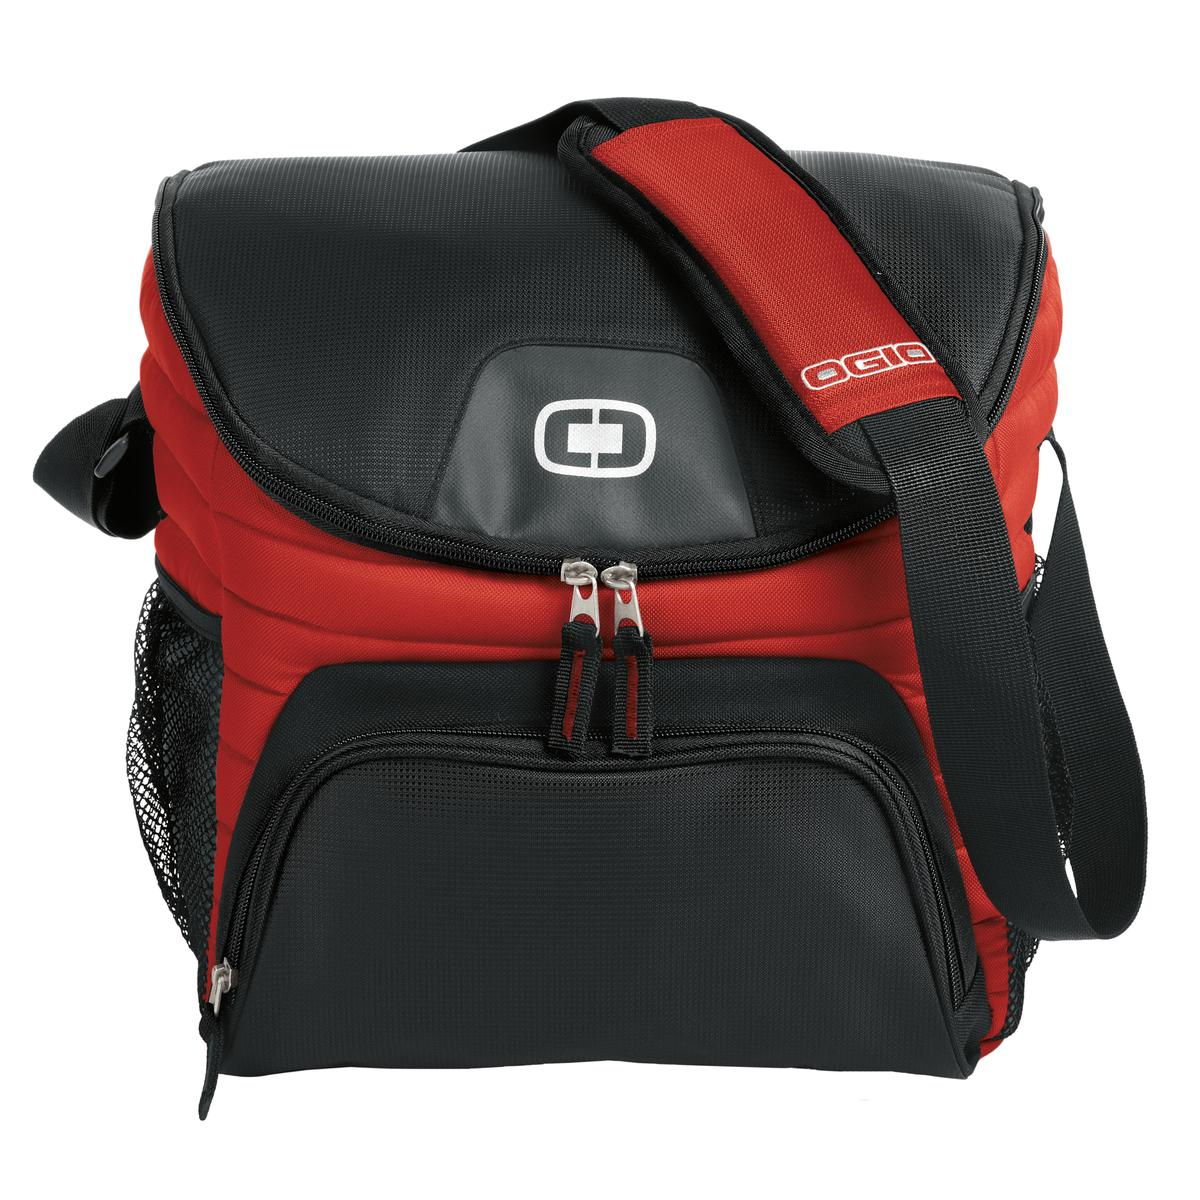 OGIO ®  - Chill 18-24 Can Cooler. 408113 - Red